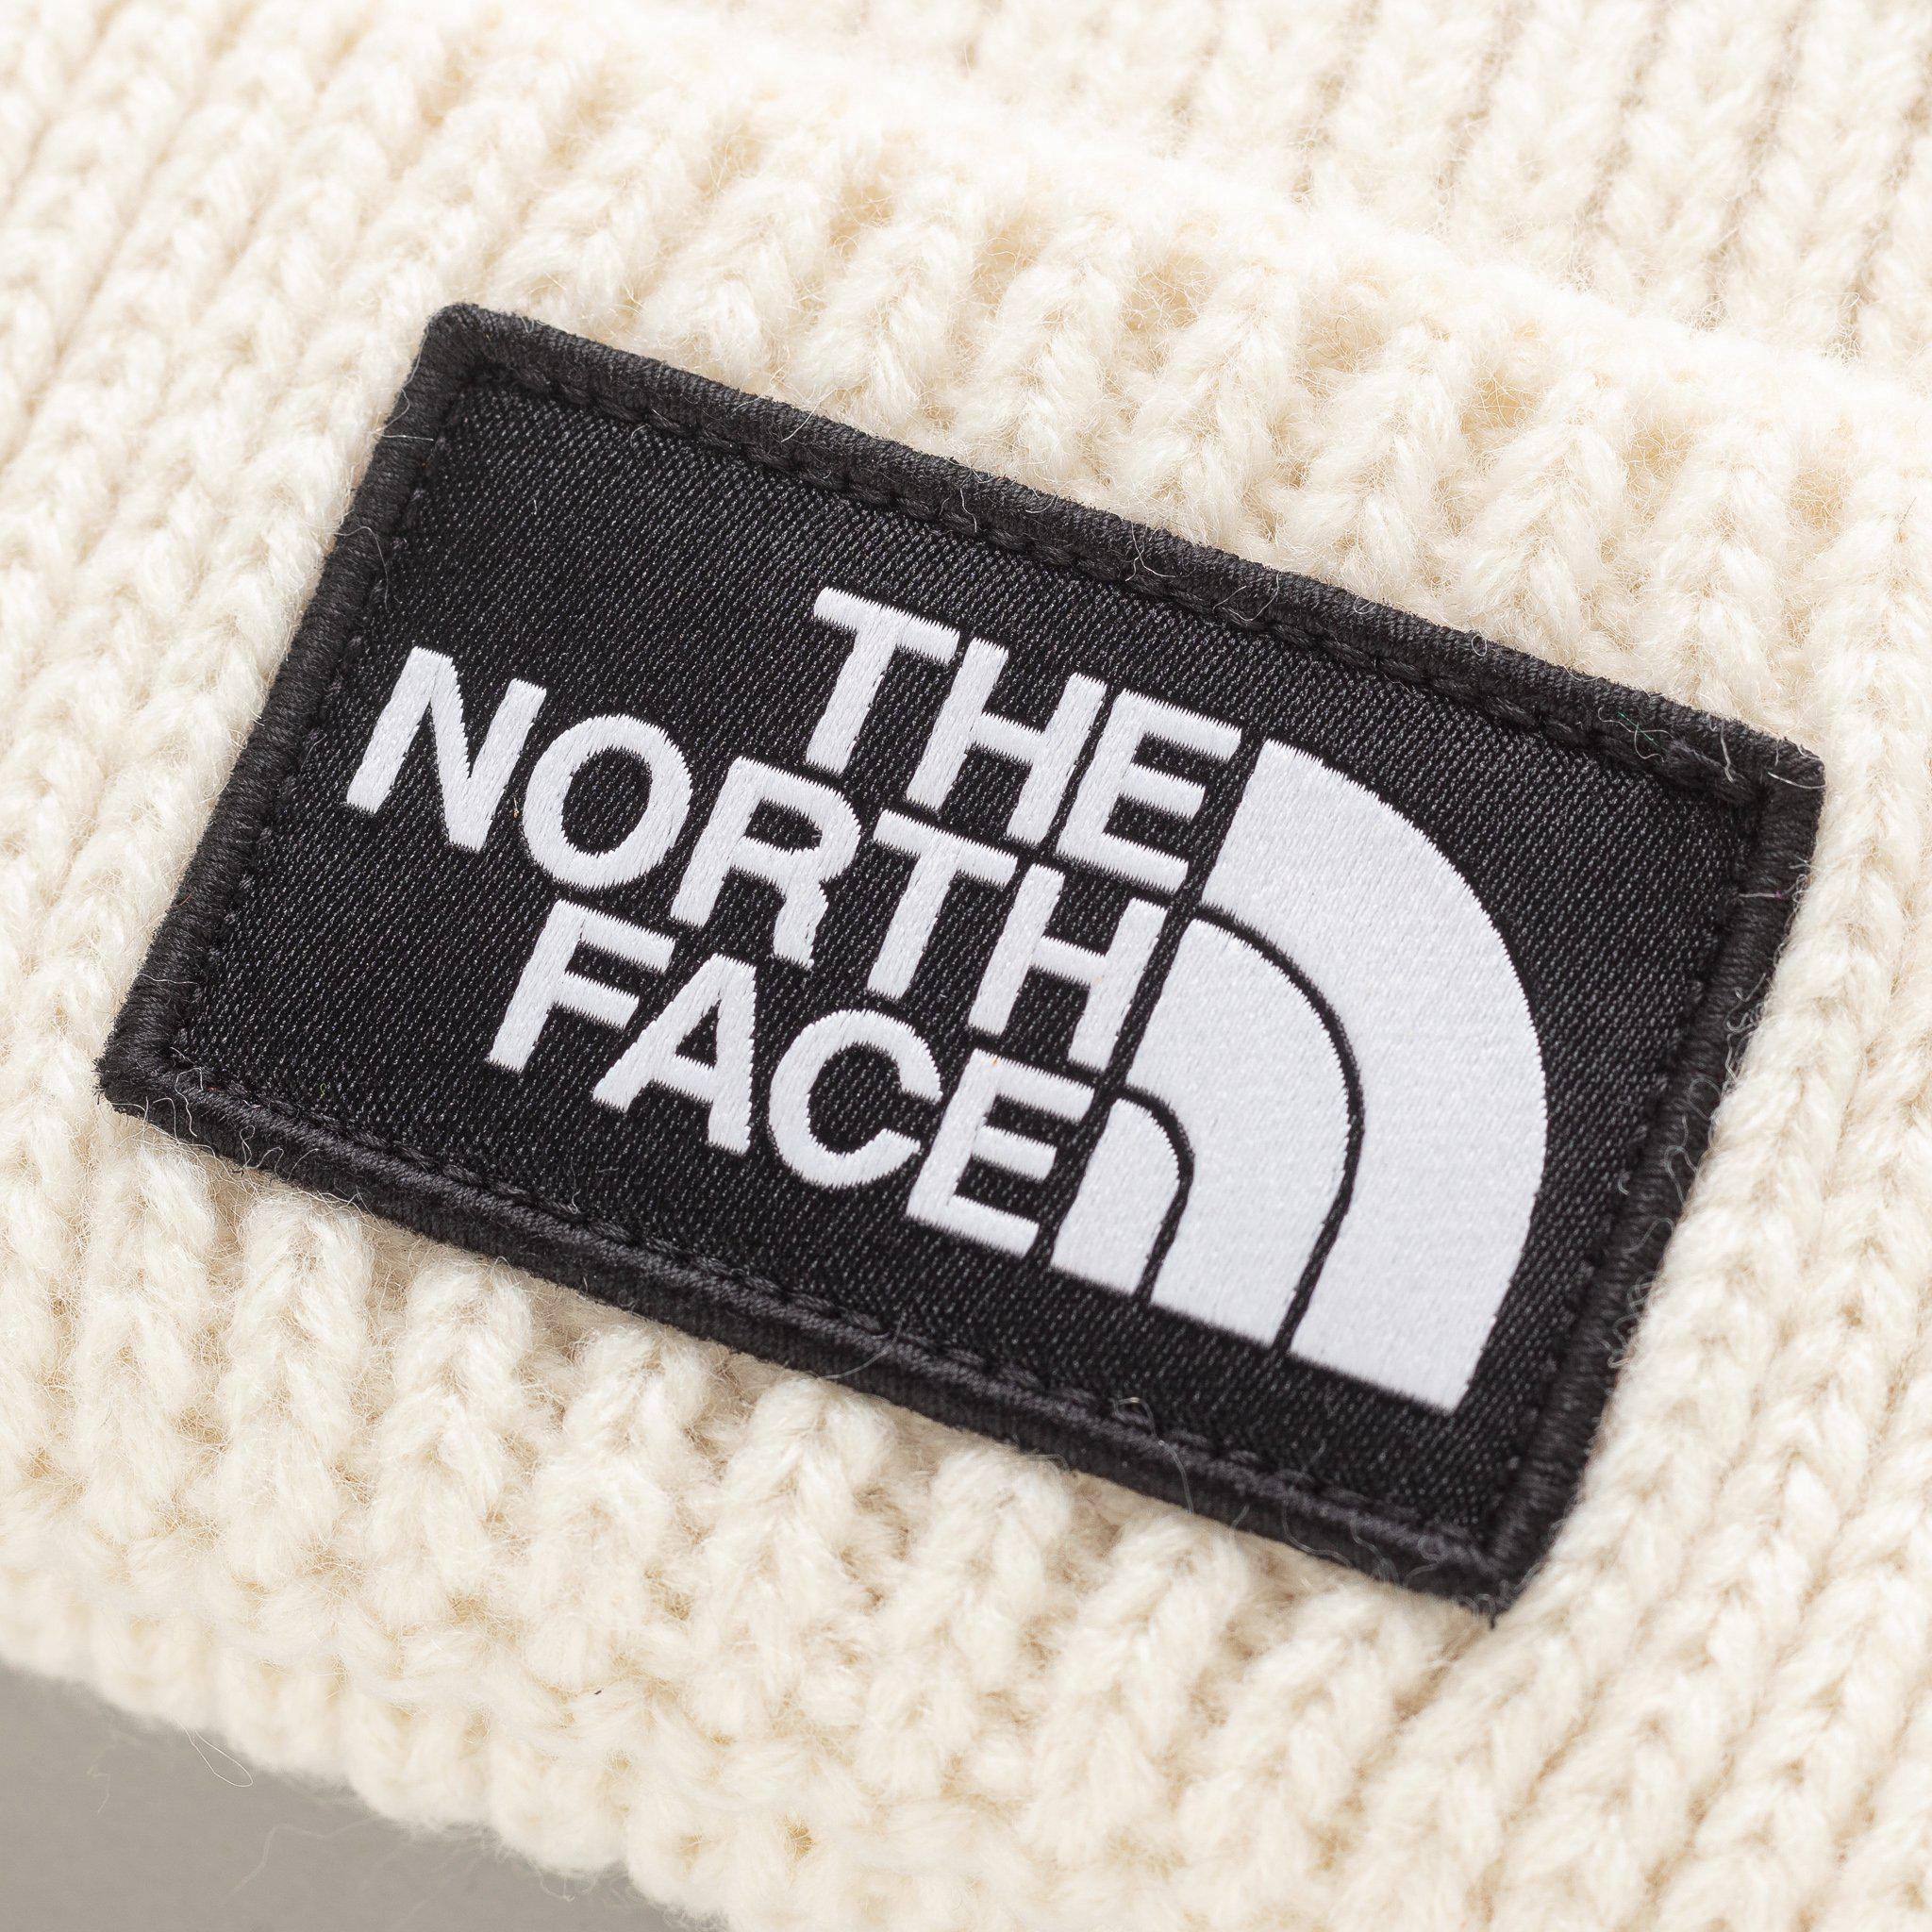 4815642346b The North Face - Tnf Logo Box Cuffed Beanie In Vintage White for Men -  Lyst. View fullscreen